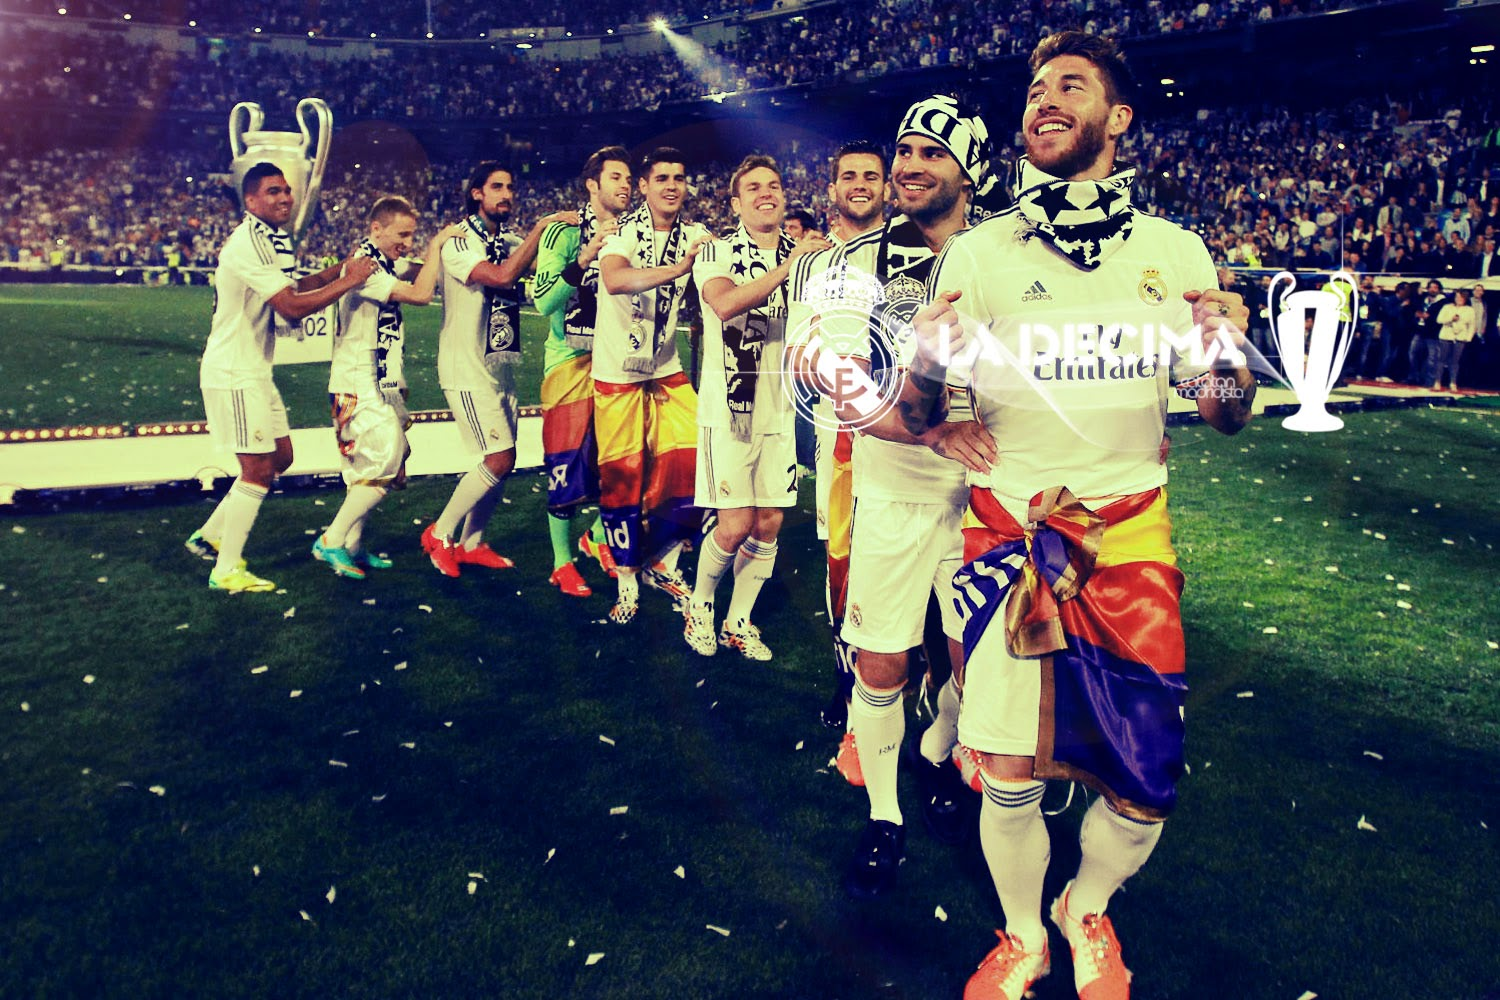 gamingeneration: real madrid hd wallpapers